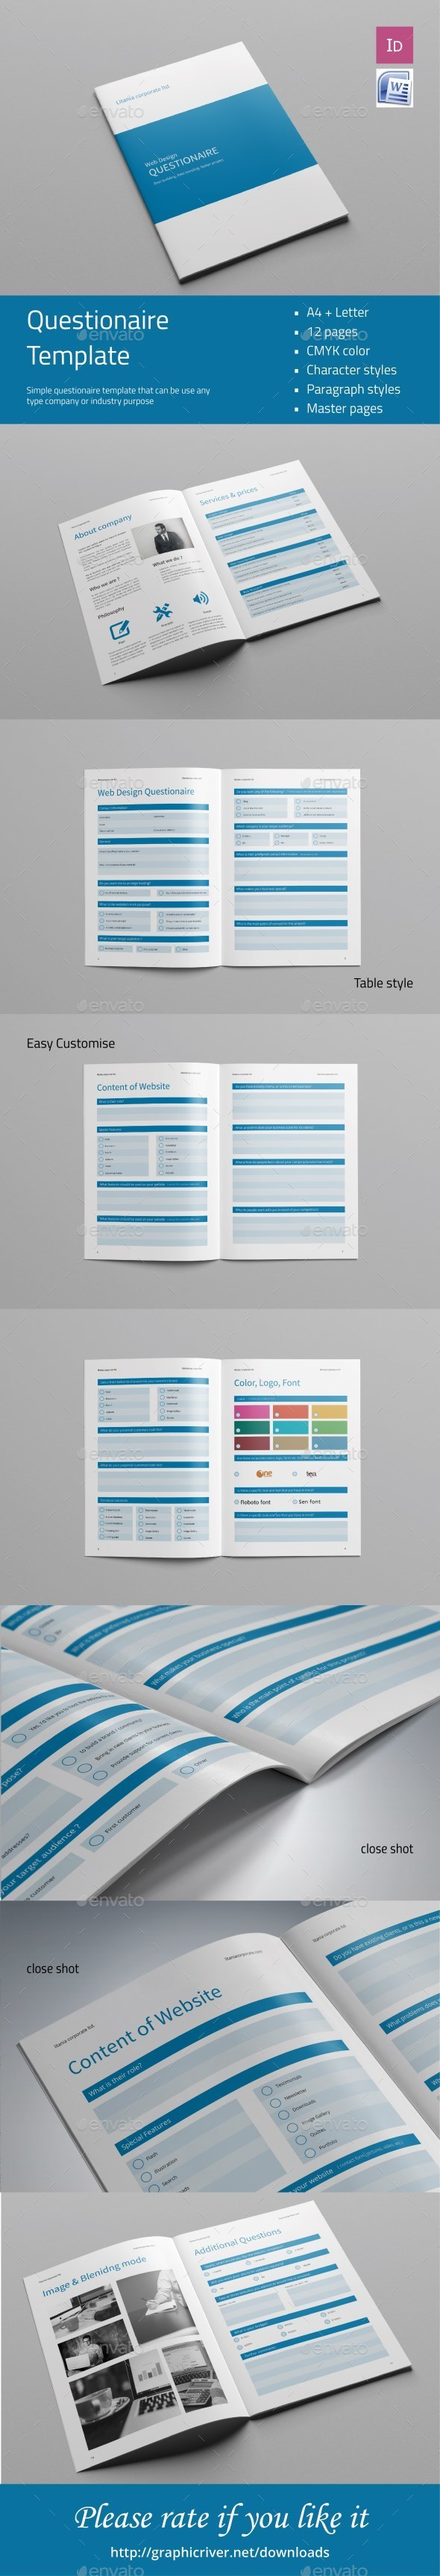 Questionare Template - Miscellaneous Print Templates